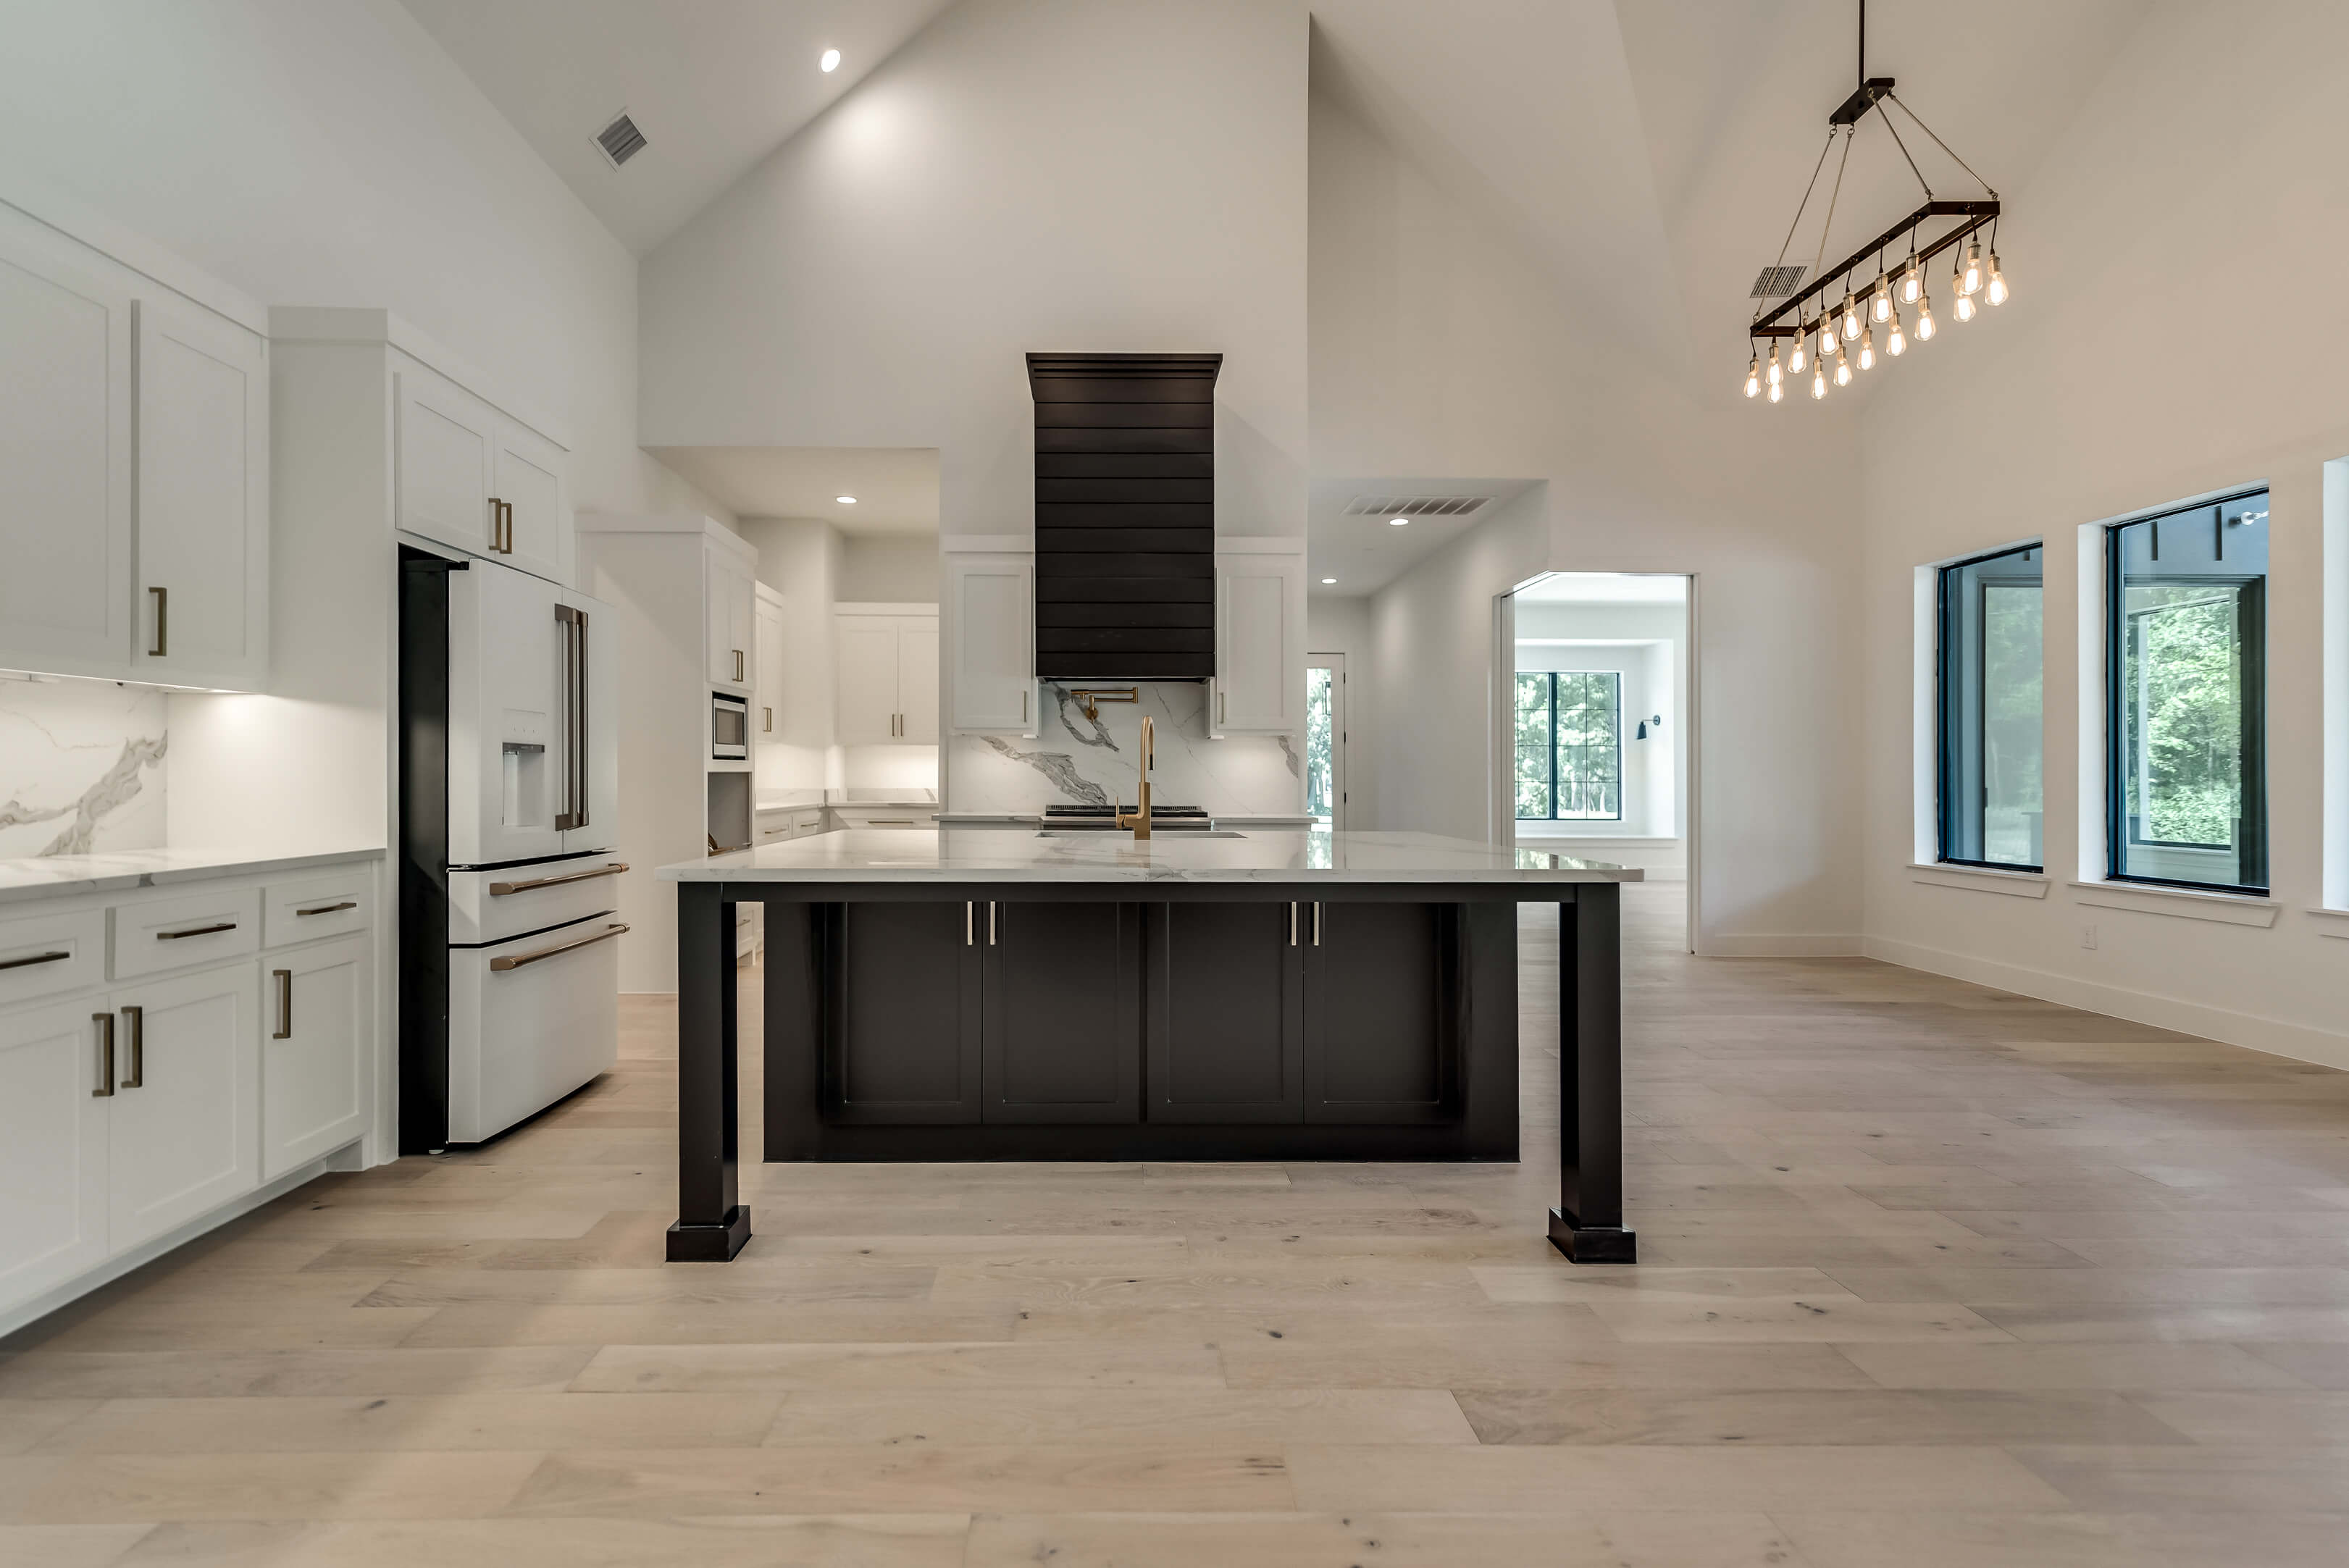 image of a kitchen in custom built home